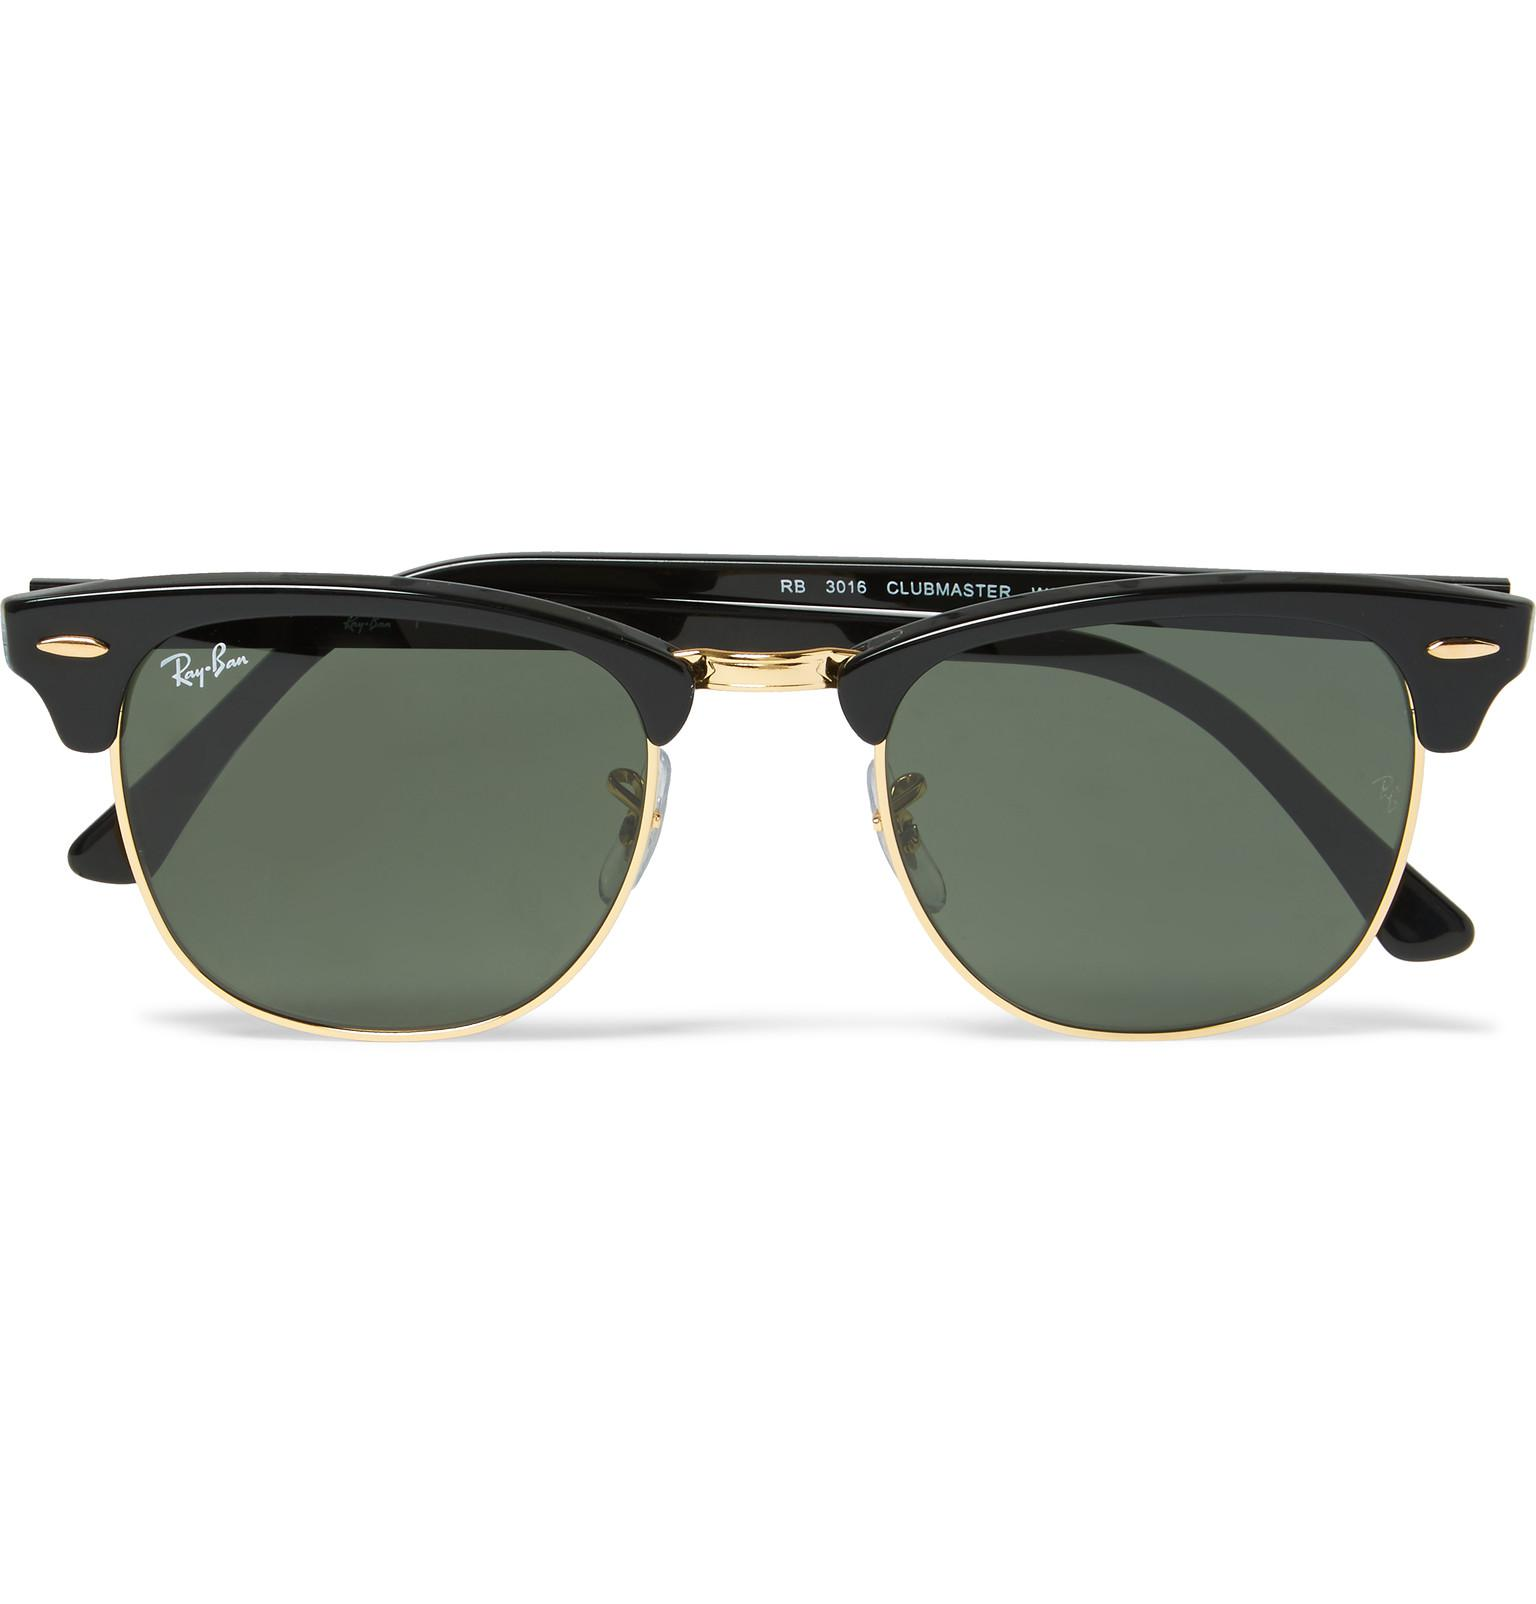 da72f527a1 Ray-Ban Clubmaster Square-frame Acetate And Gold-tone Sunglasses in ...